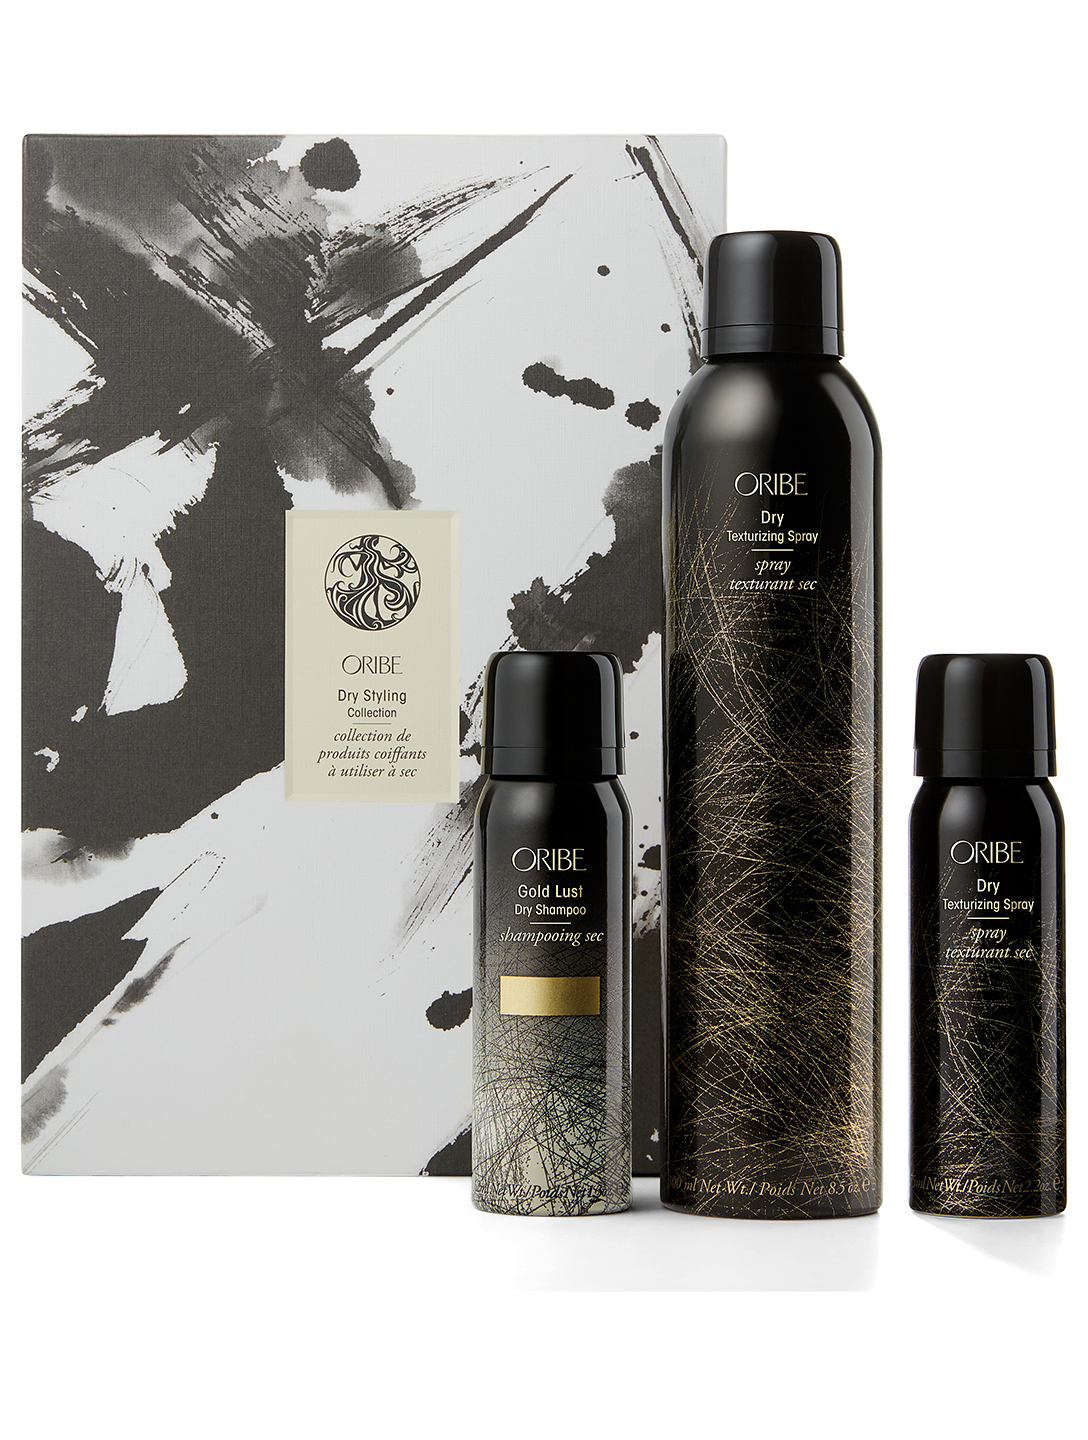 ORIBE Dry Styling Collection - Holiday Edition Beauty